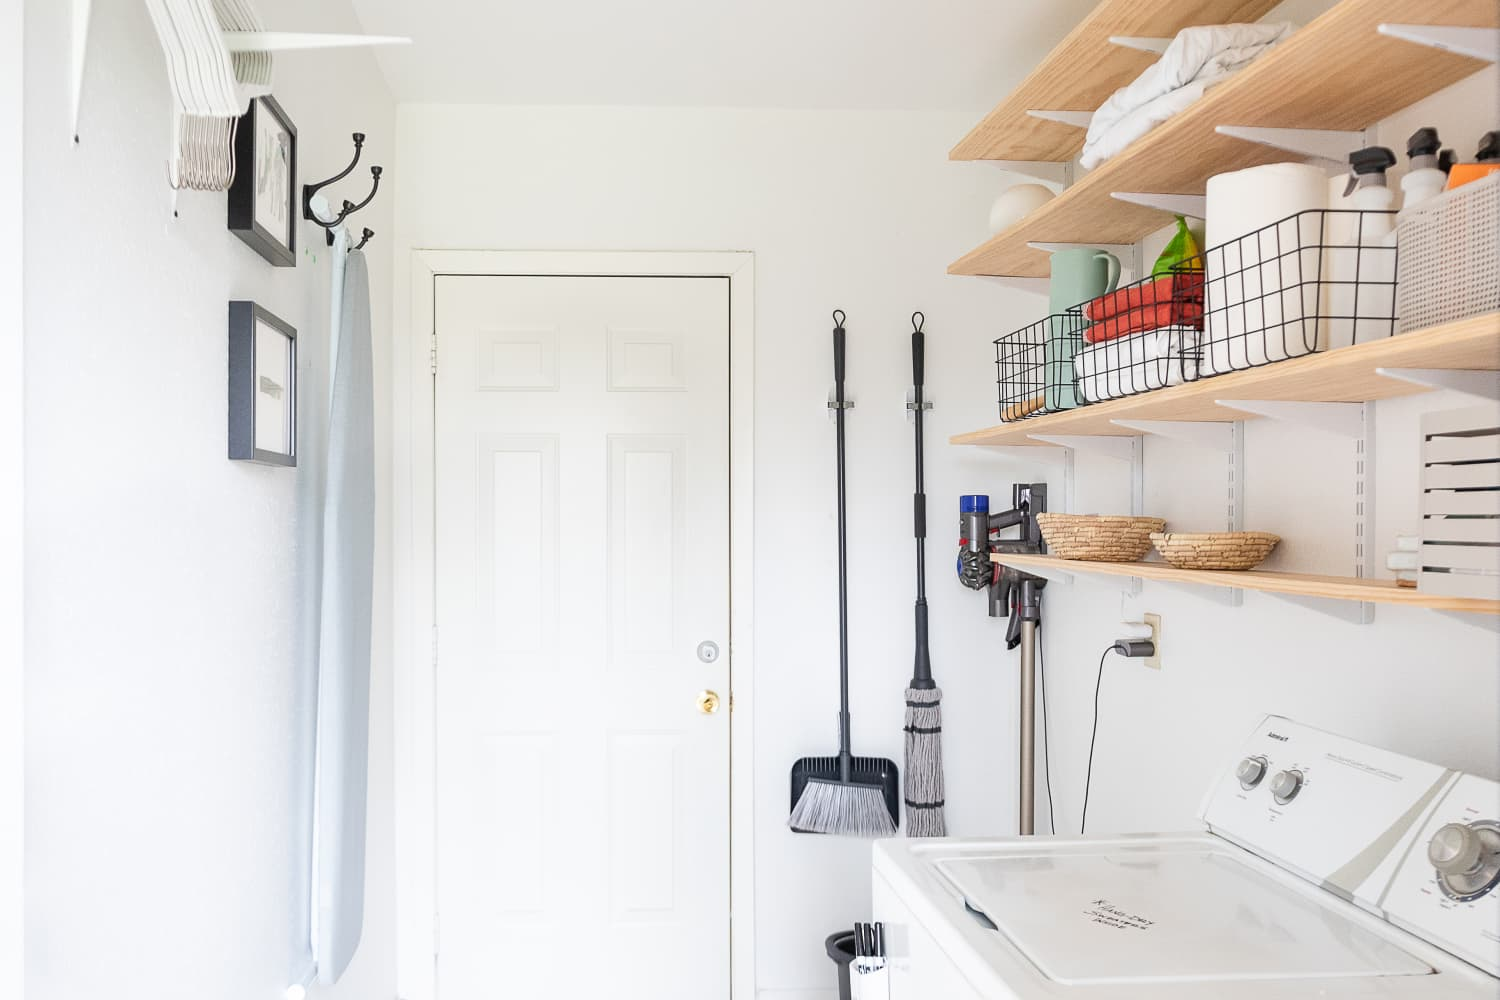 The Only Setting You Should Be Using on Your Laundry Machine